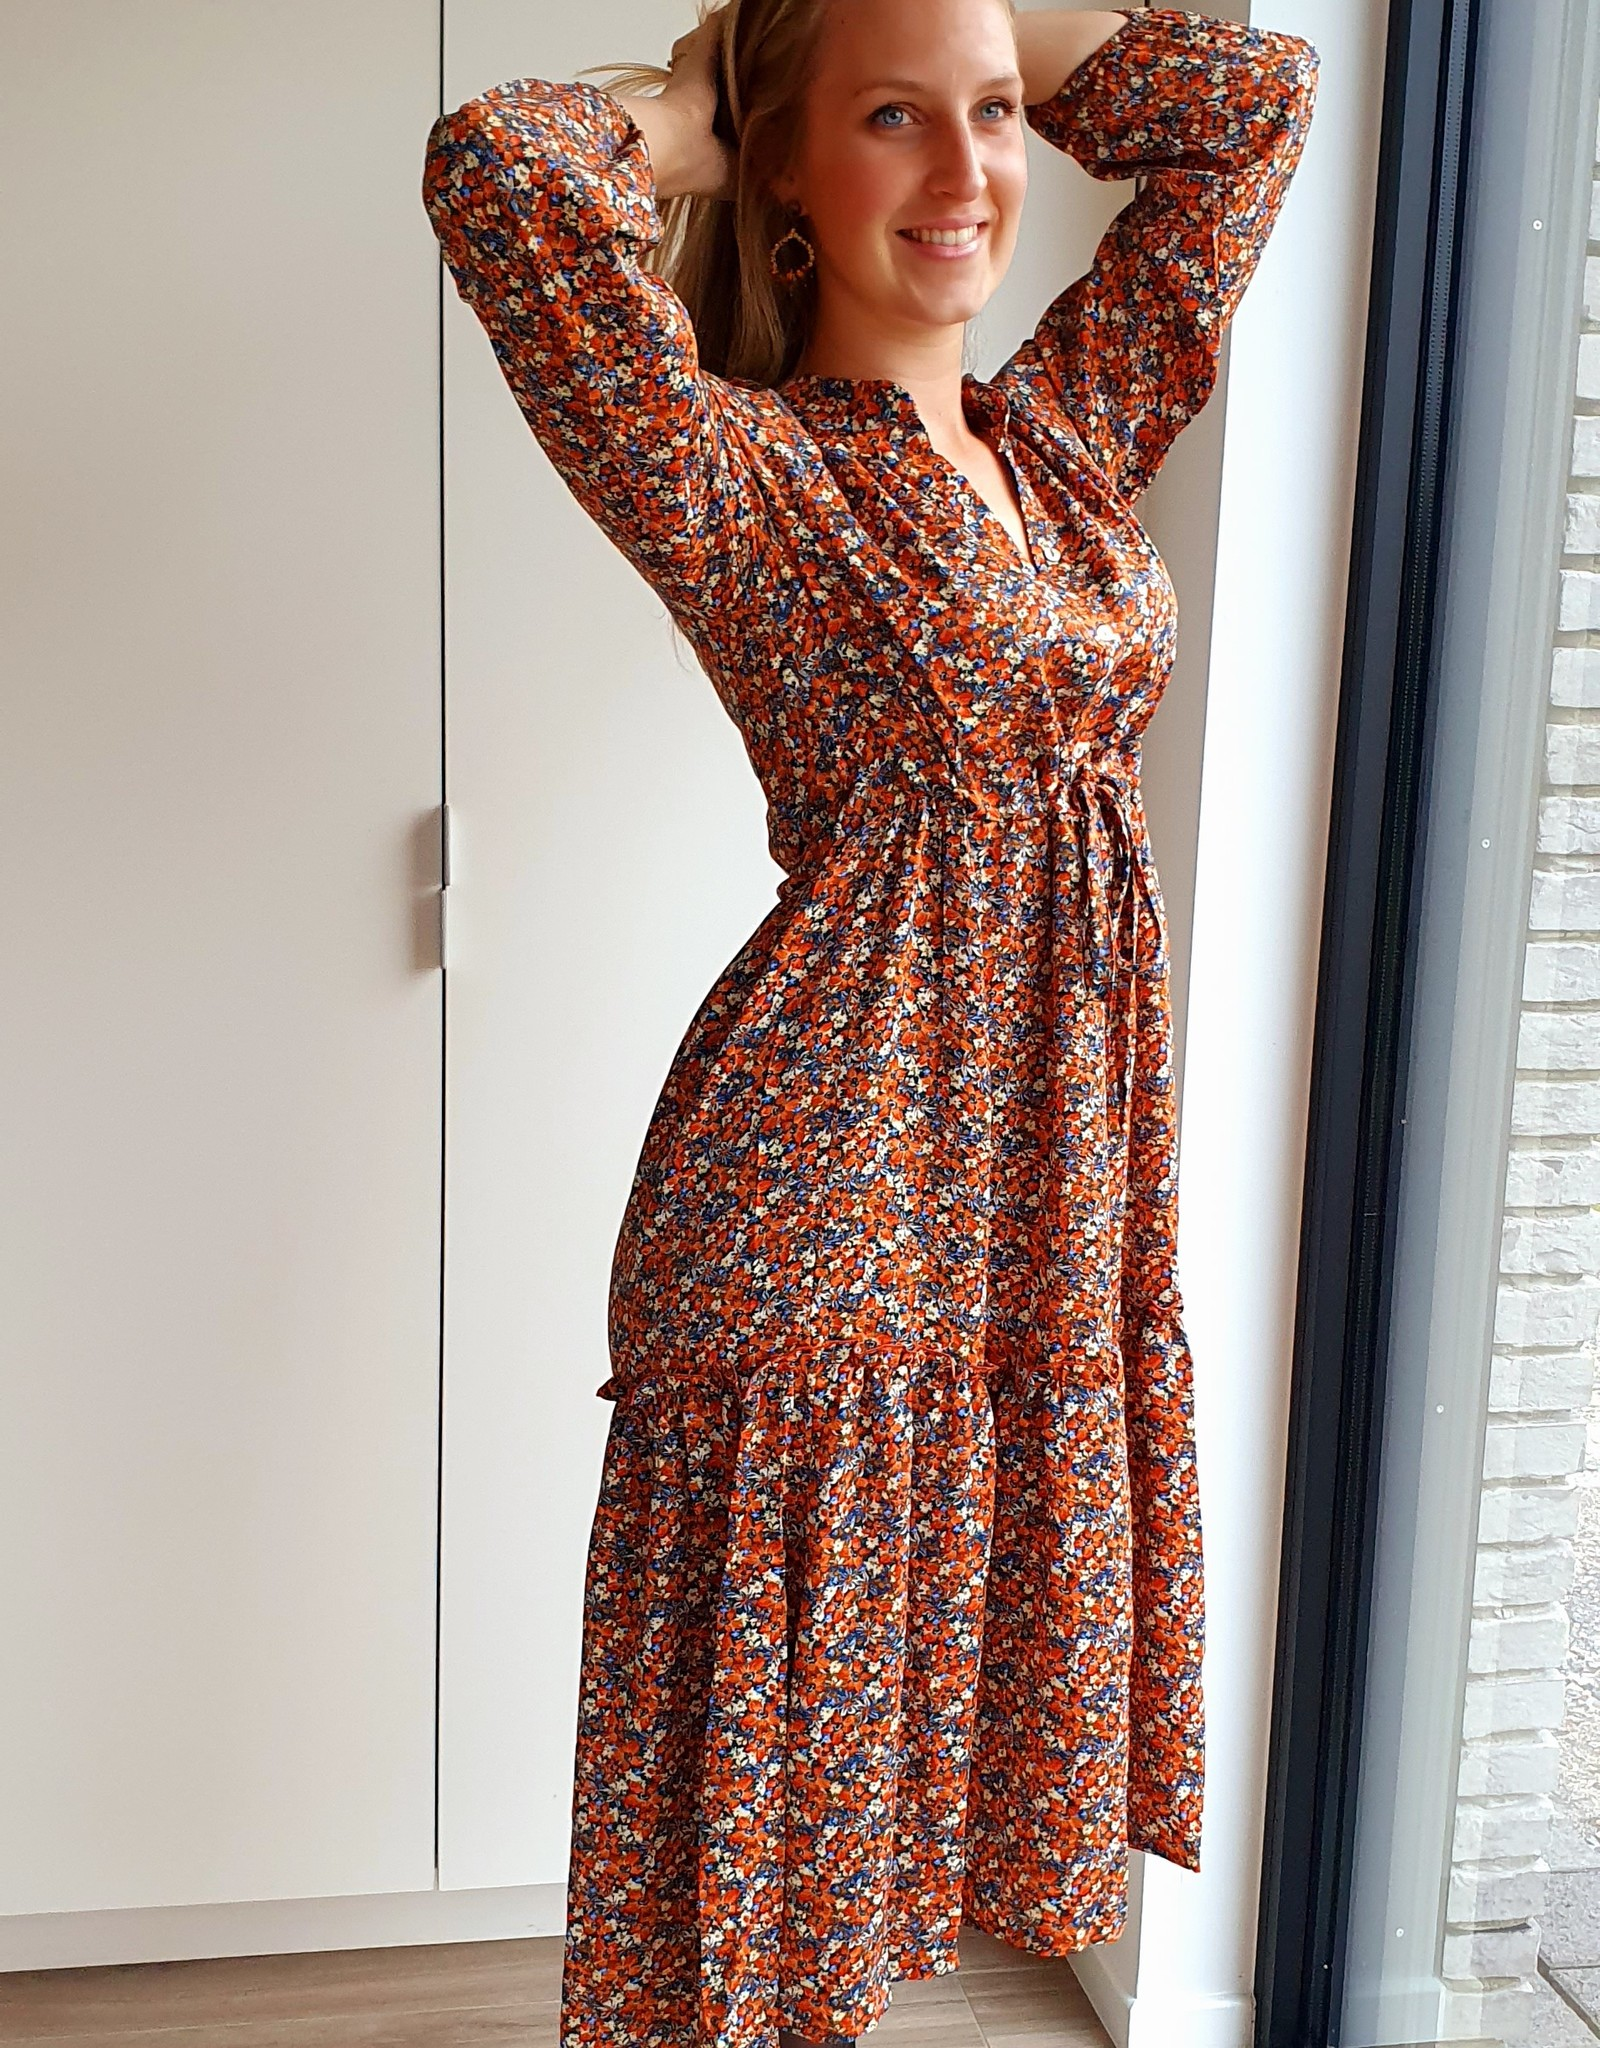 Autumn flower dress with a touch of blue